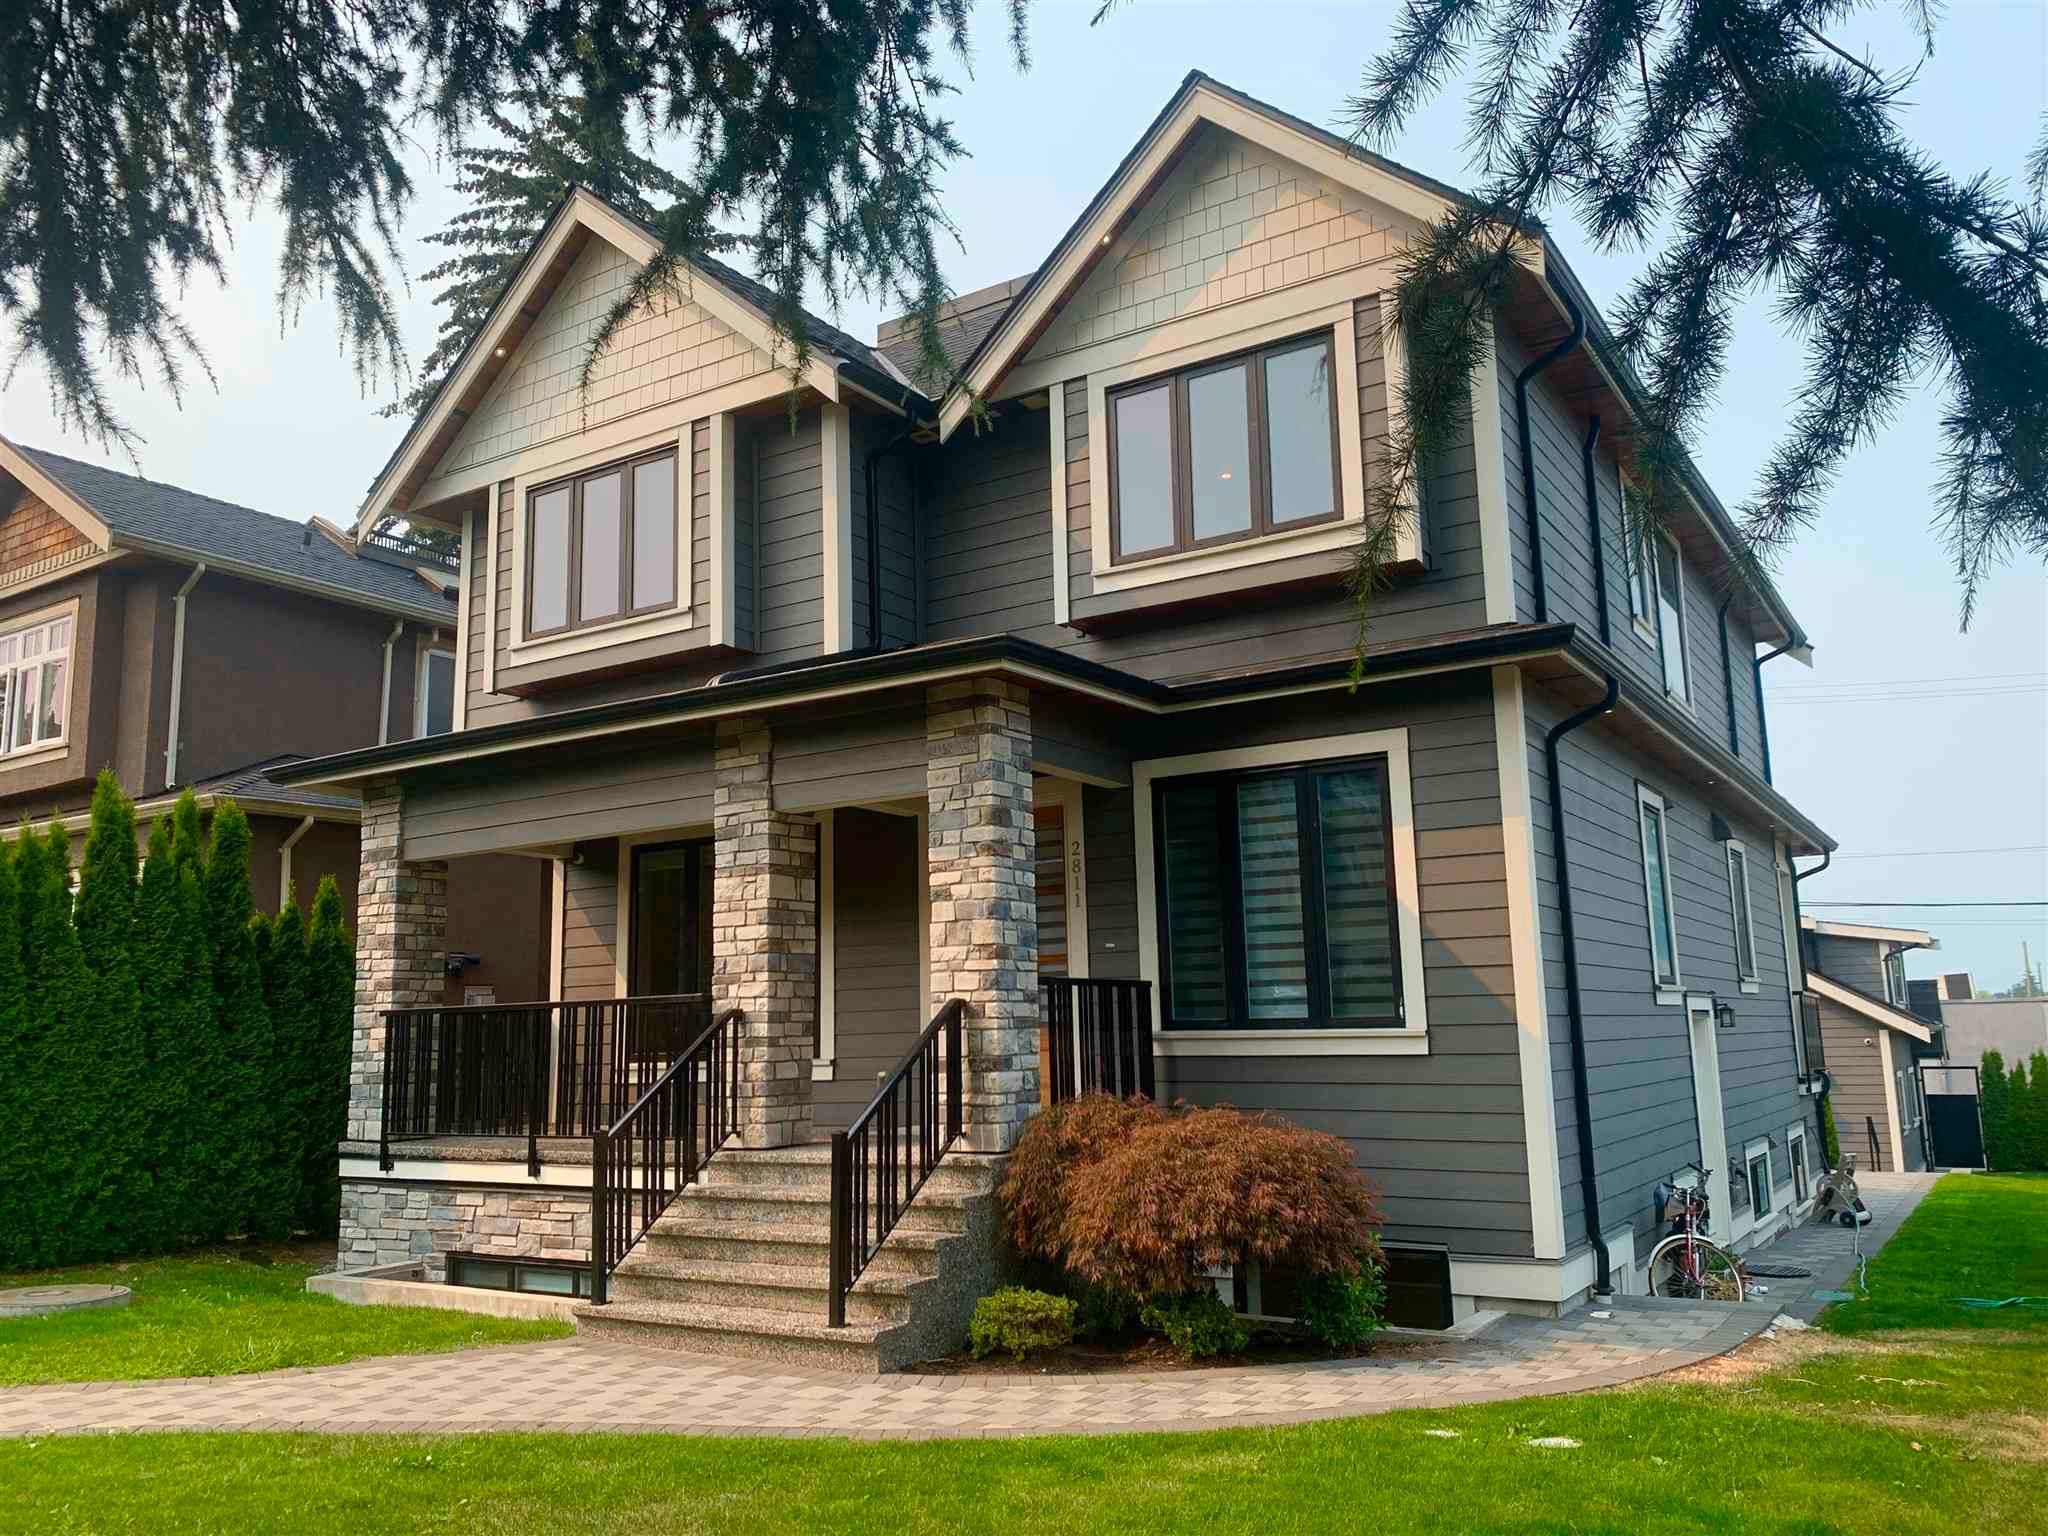 Main Photo: 2811 OLIVER Crescent in Vancouver: Arbutus House for sale (Vancouver West)  : MLS®# R2606149